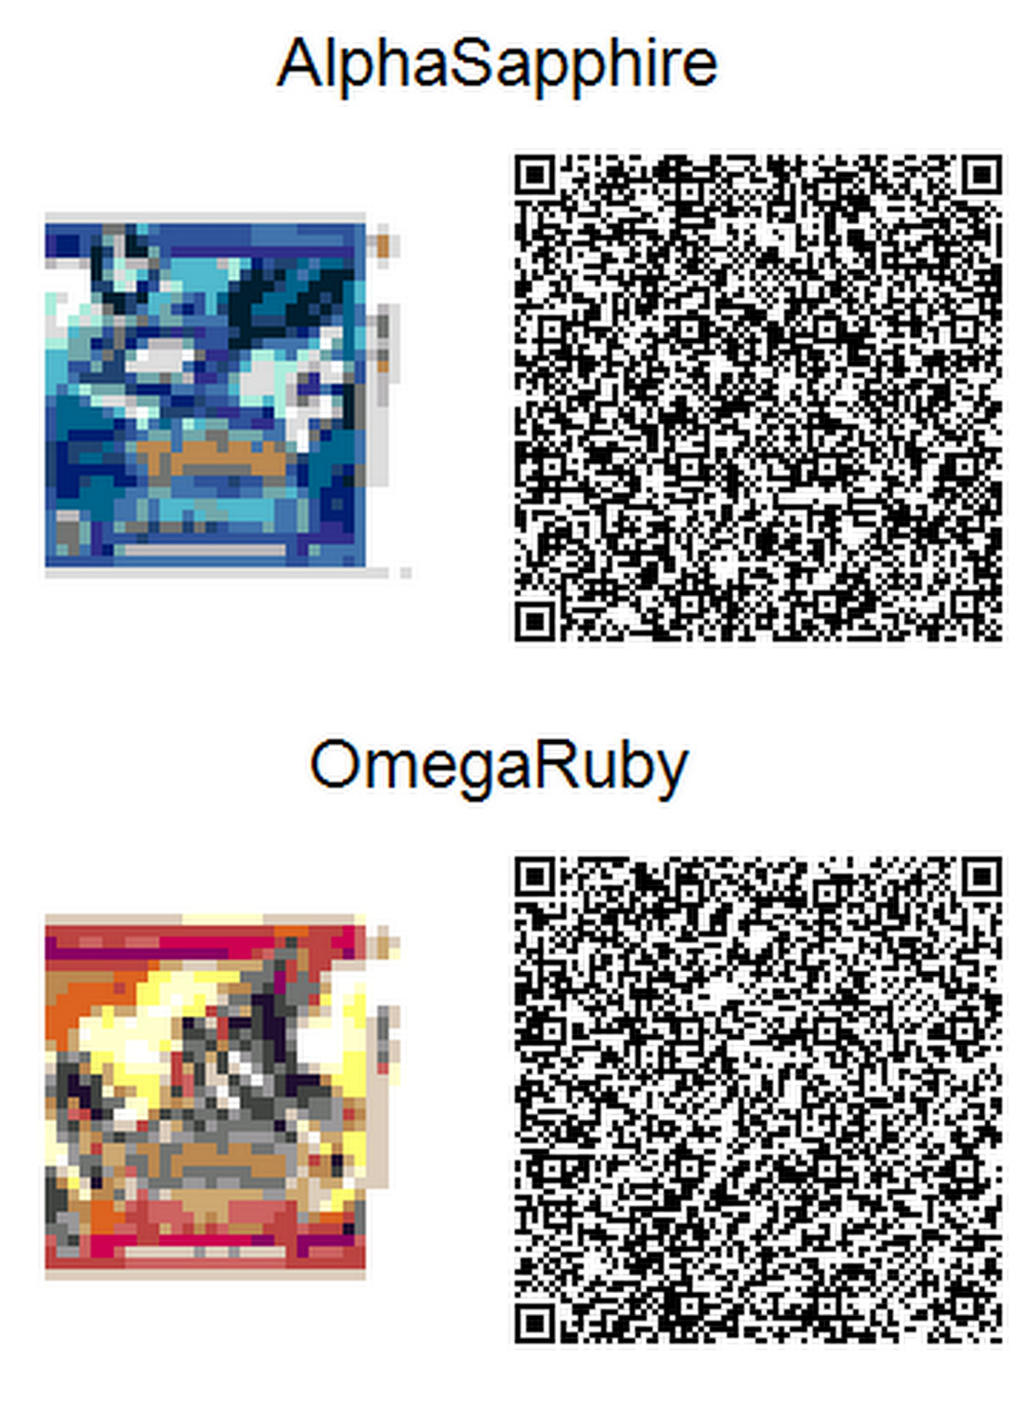 Pokemon Omegaruby Alphasapphire Acnl Qr Codes By Toxicsquall On Deviantart